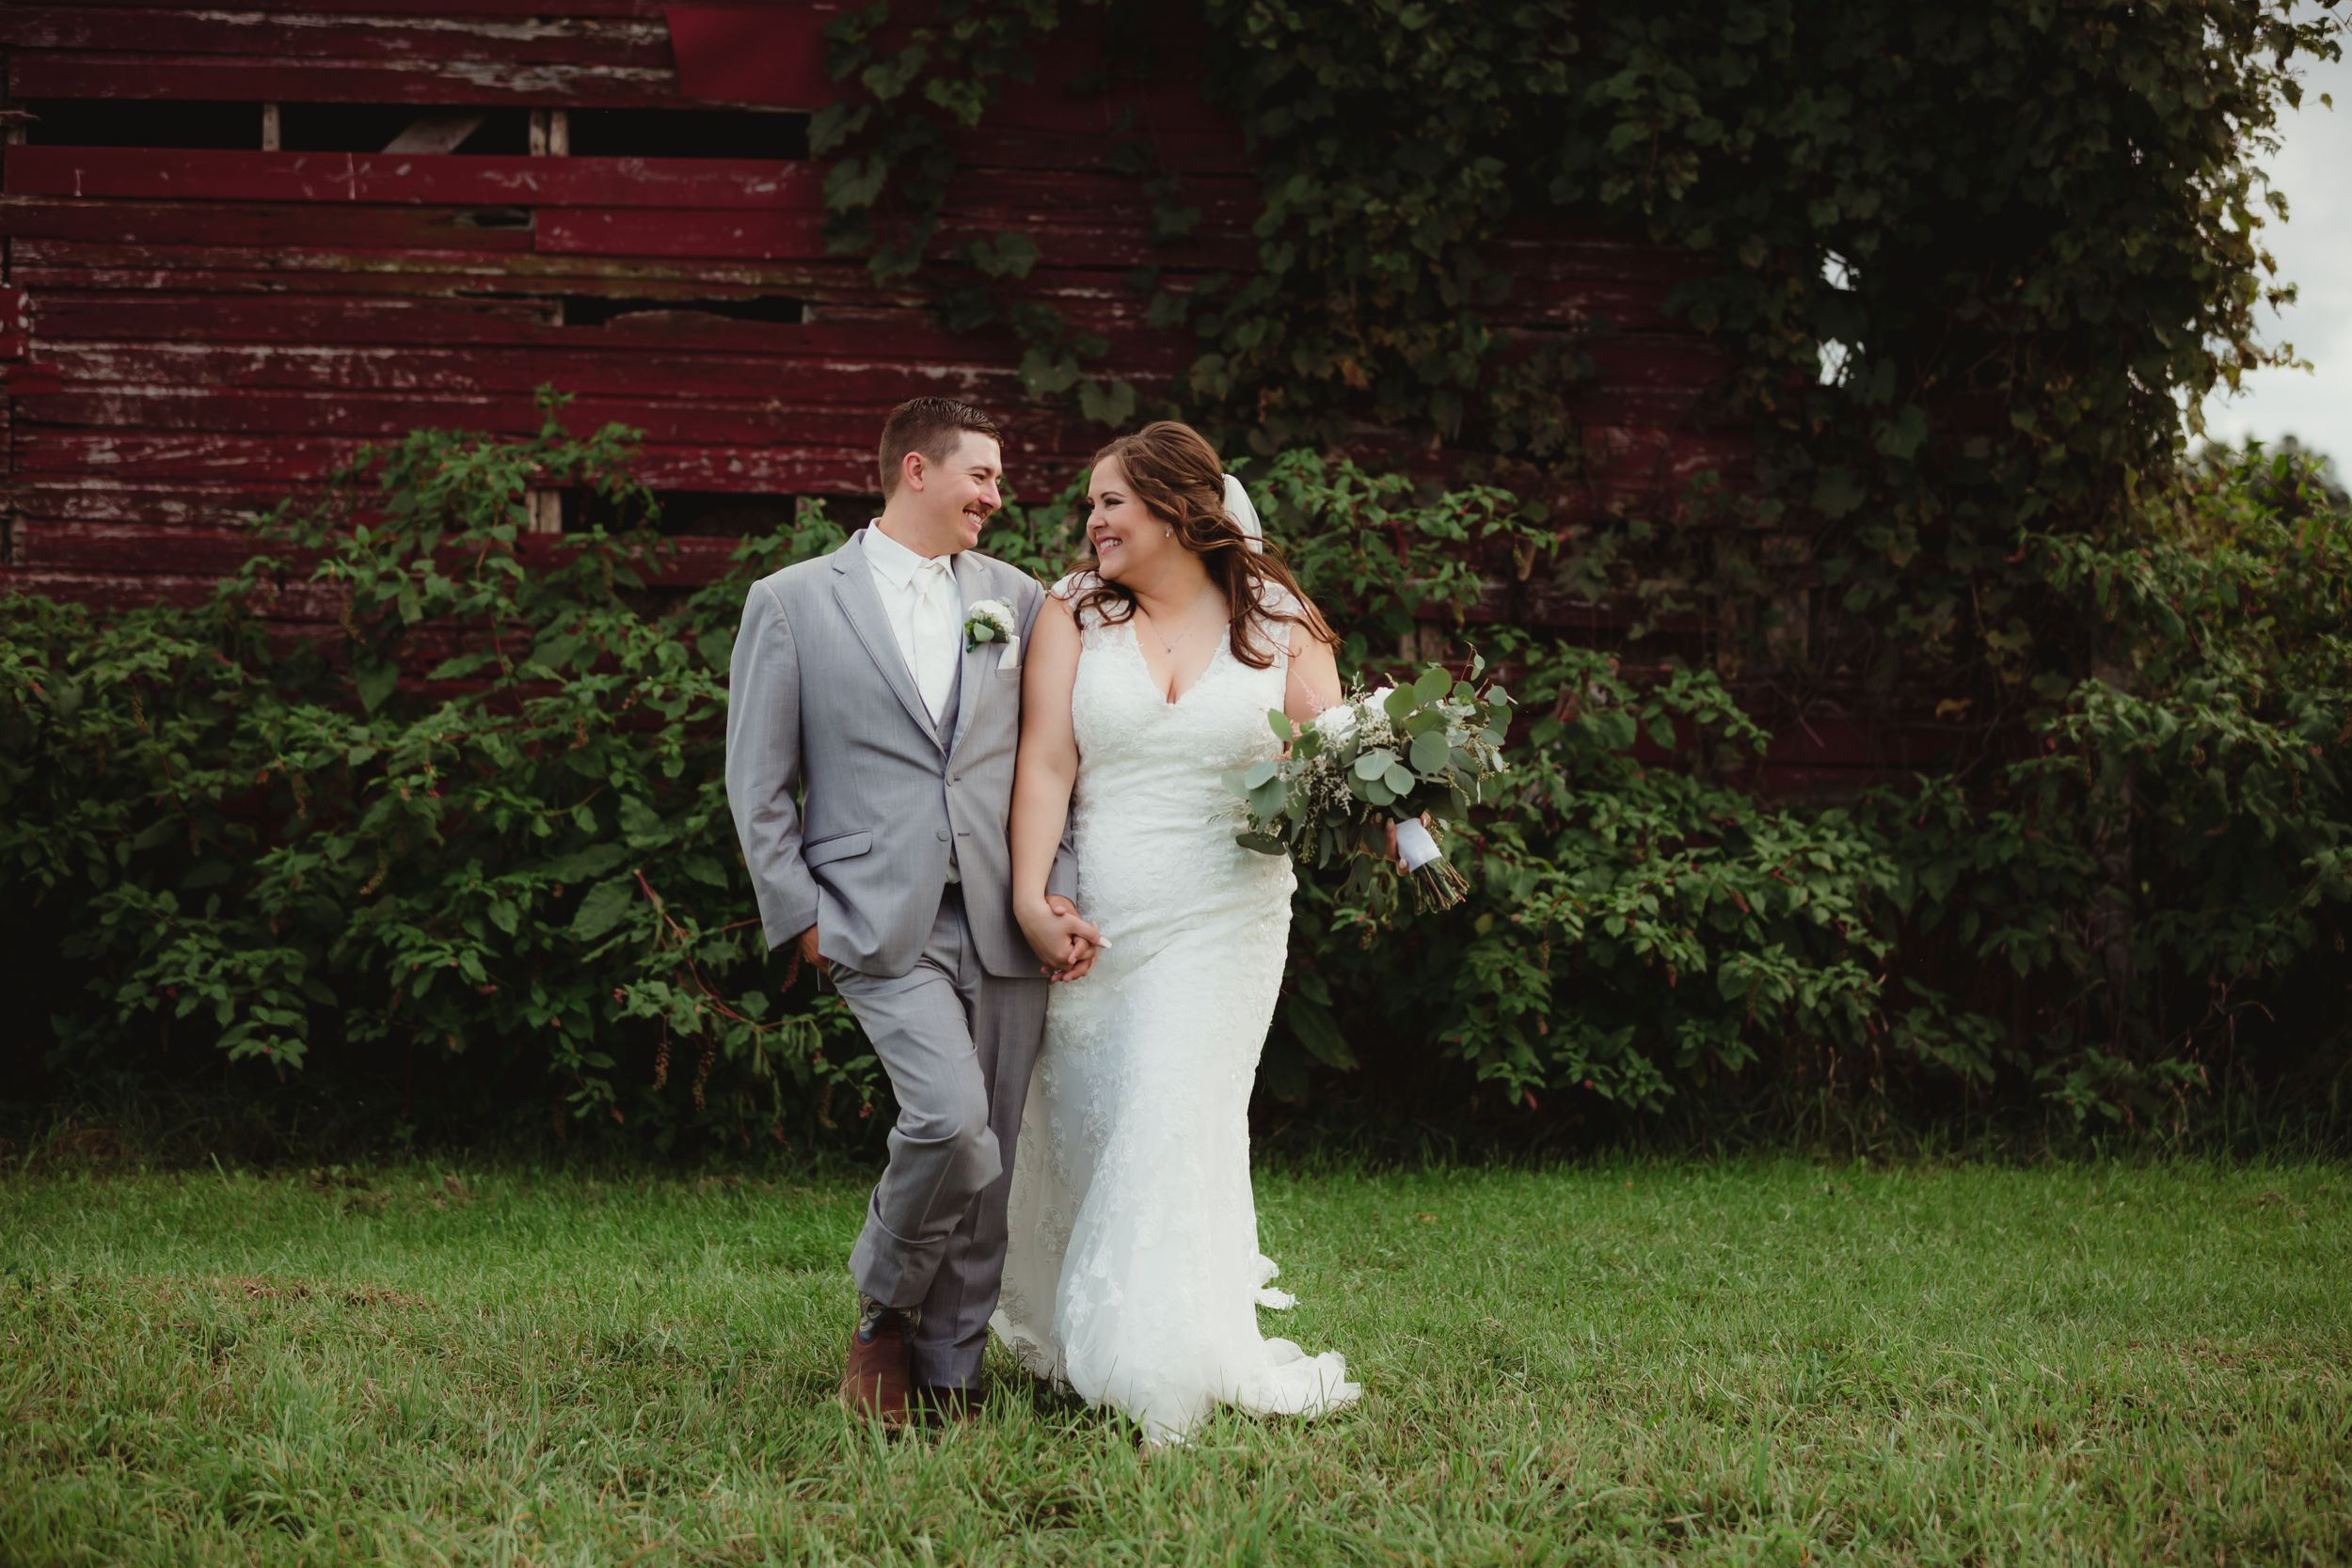 Bride and groom holding hands, walking, and smiling at each other in front of the old barn.